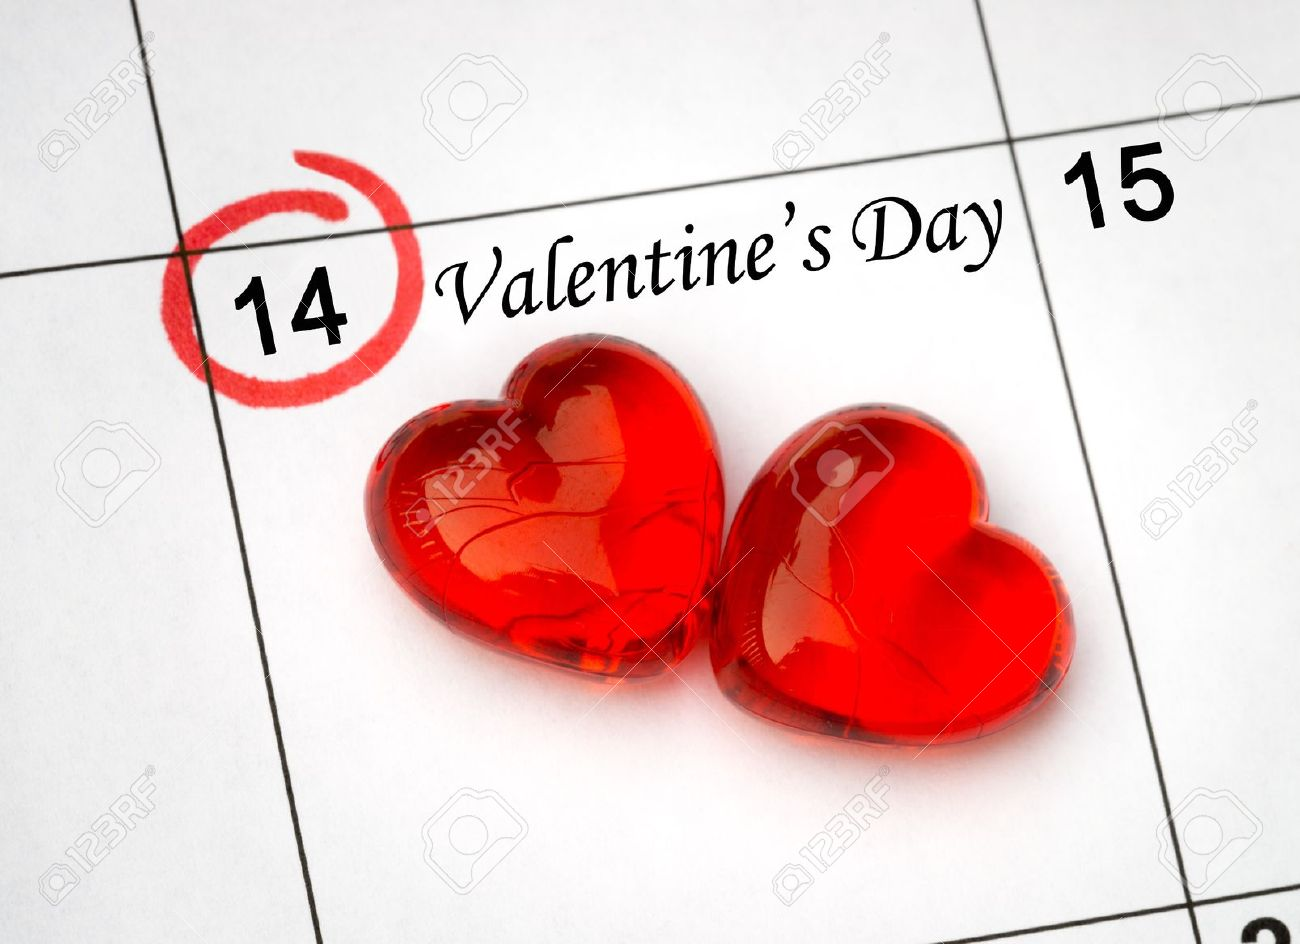 St. Valentines Day - February  14